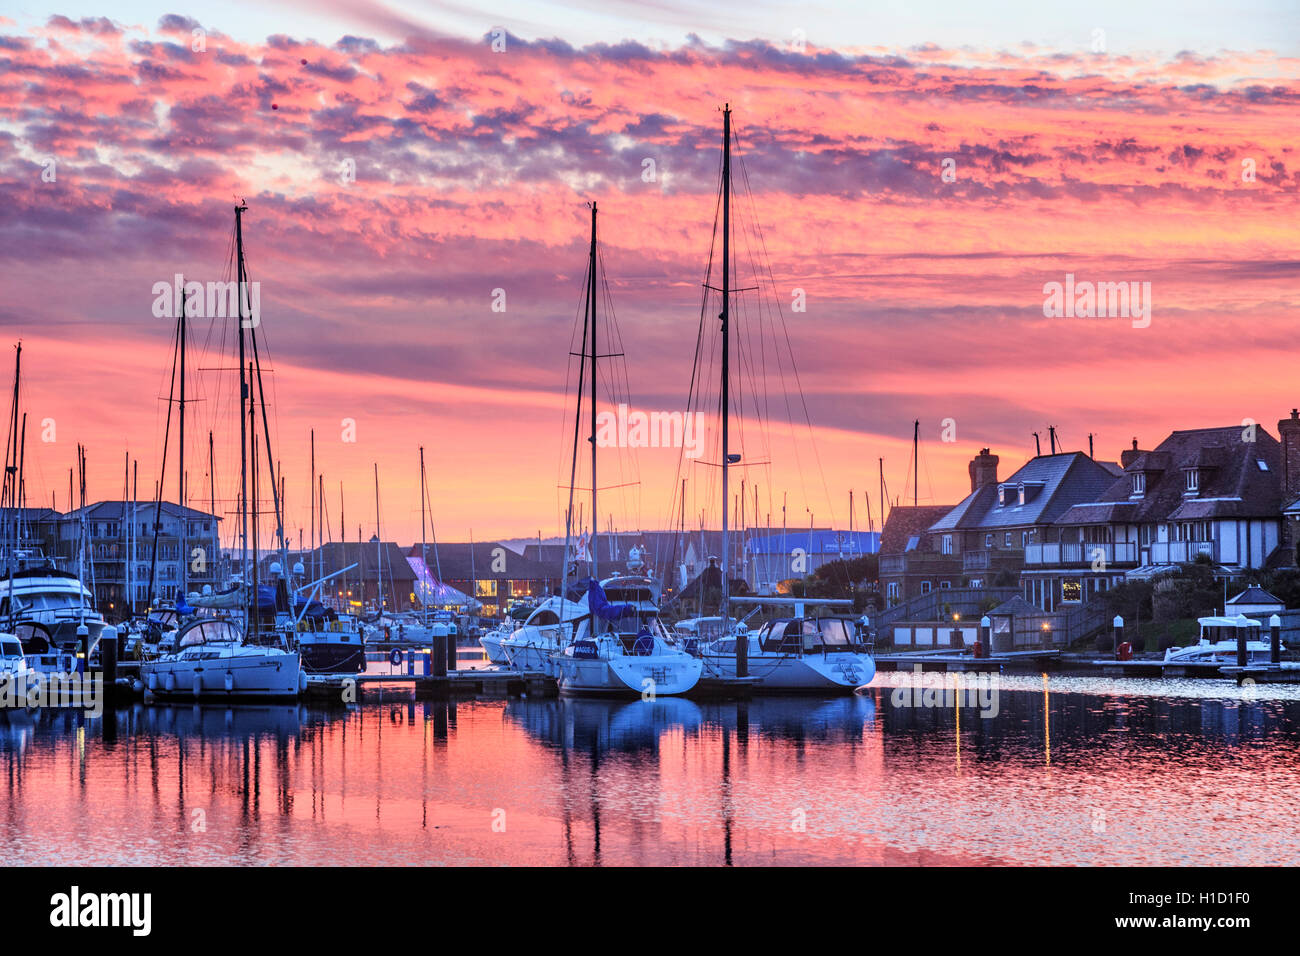 Sovereign Harbour Eastbourne al Tramonto Tramonto Immagini Stock